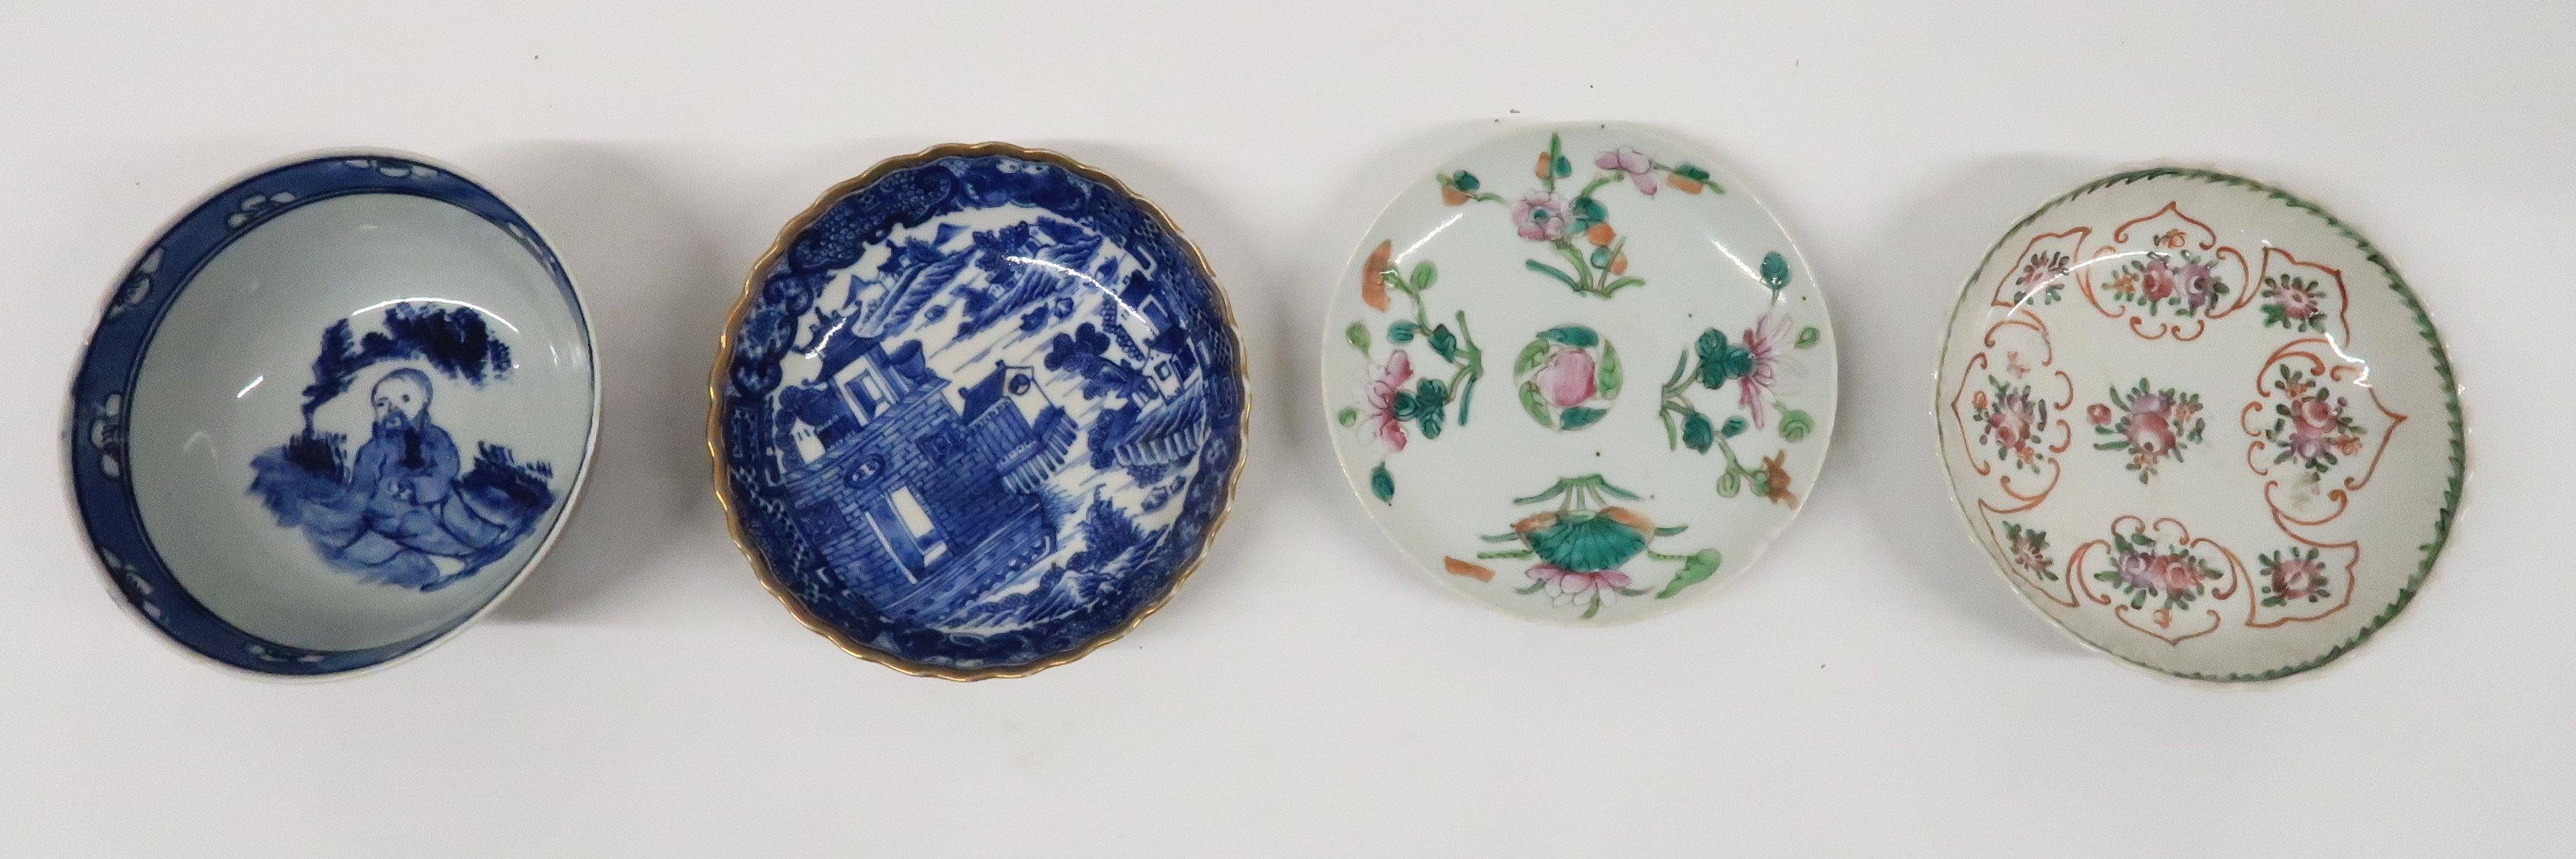 A COLLECTION OF CHINESE EXPORT TEAWARES and others including famille rose, Chien Lung, blue and - Image 18 of 22